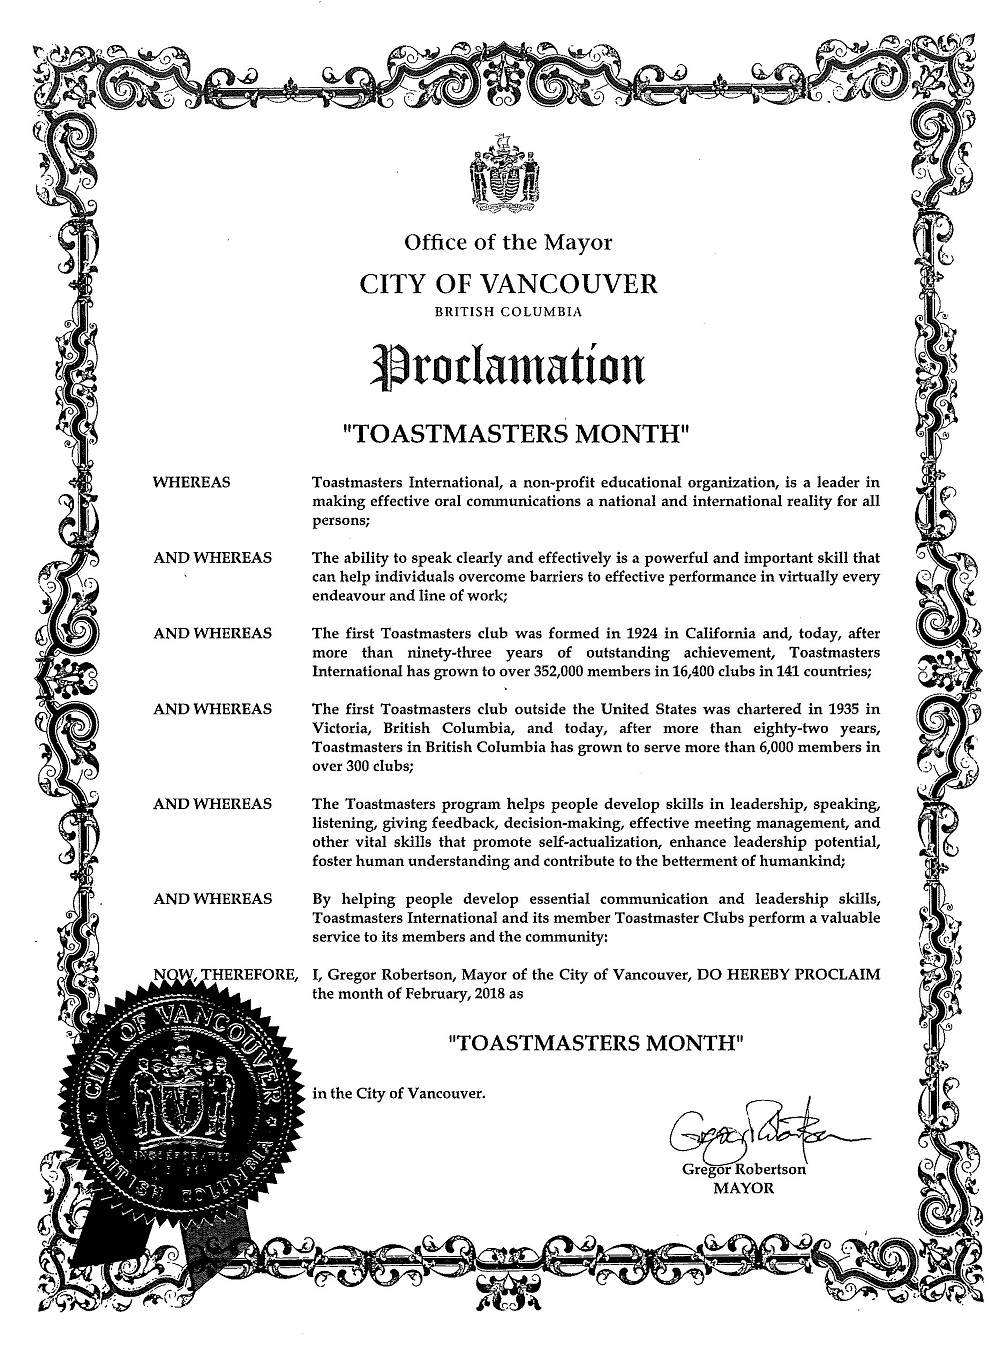 City of Vancouver Proclamation